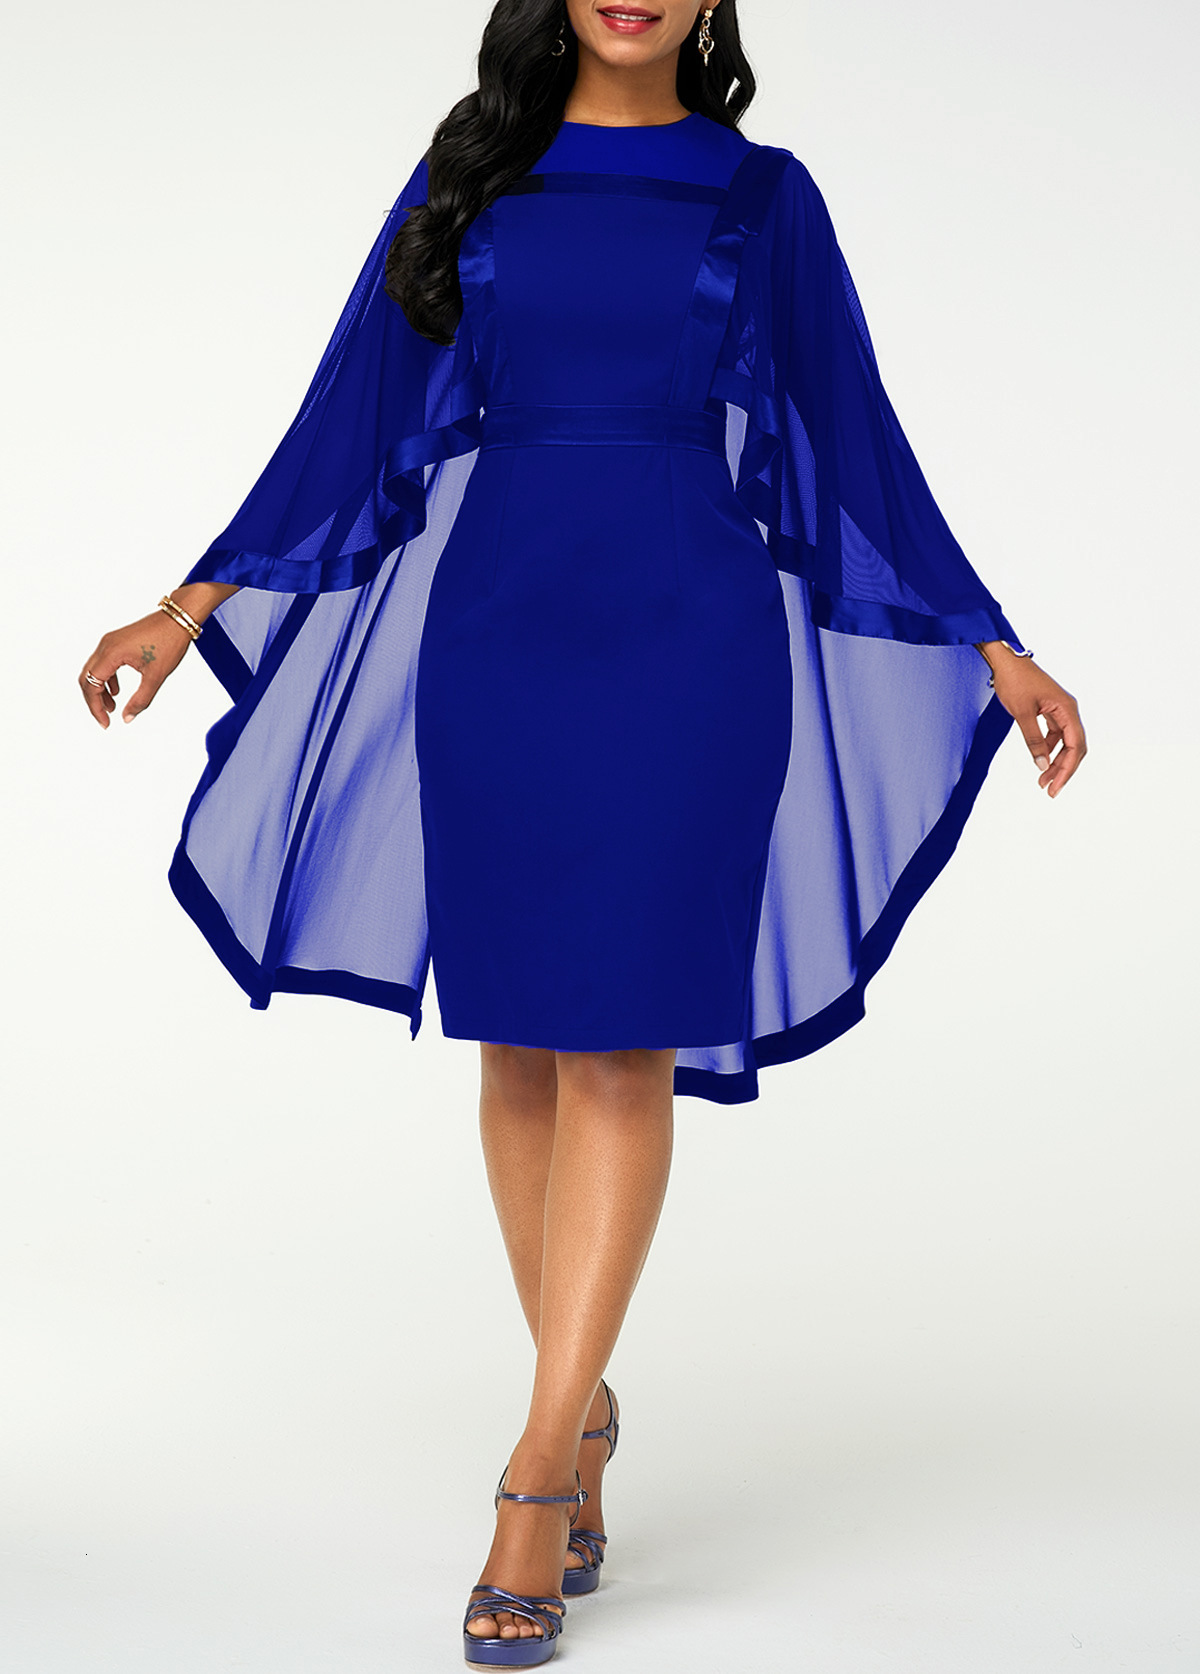 BGW Round Neck Chiffon Mother Of The Bride Dresses Half Sleeves Real Photos Mom Dress Solid Color PLus Size 2019